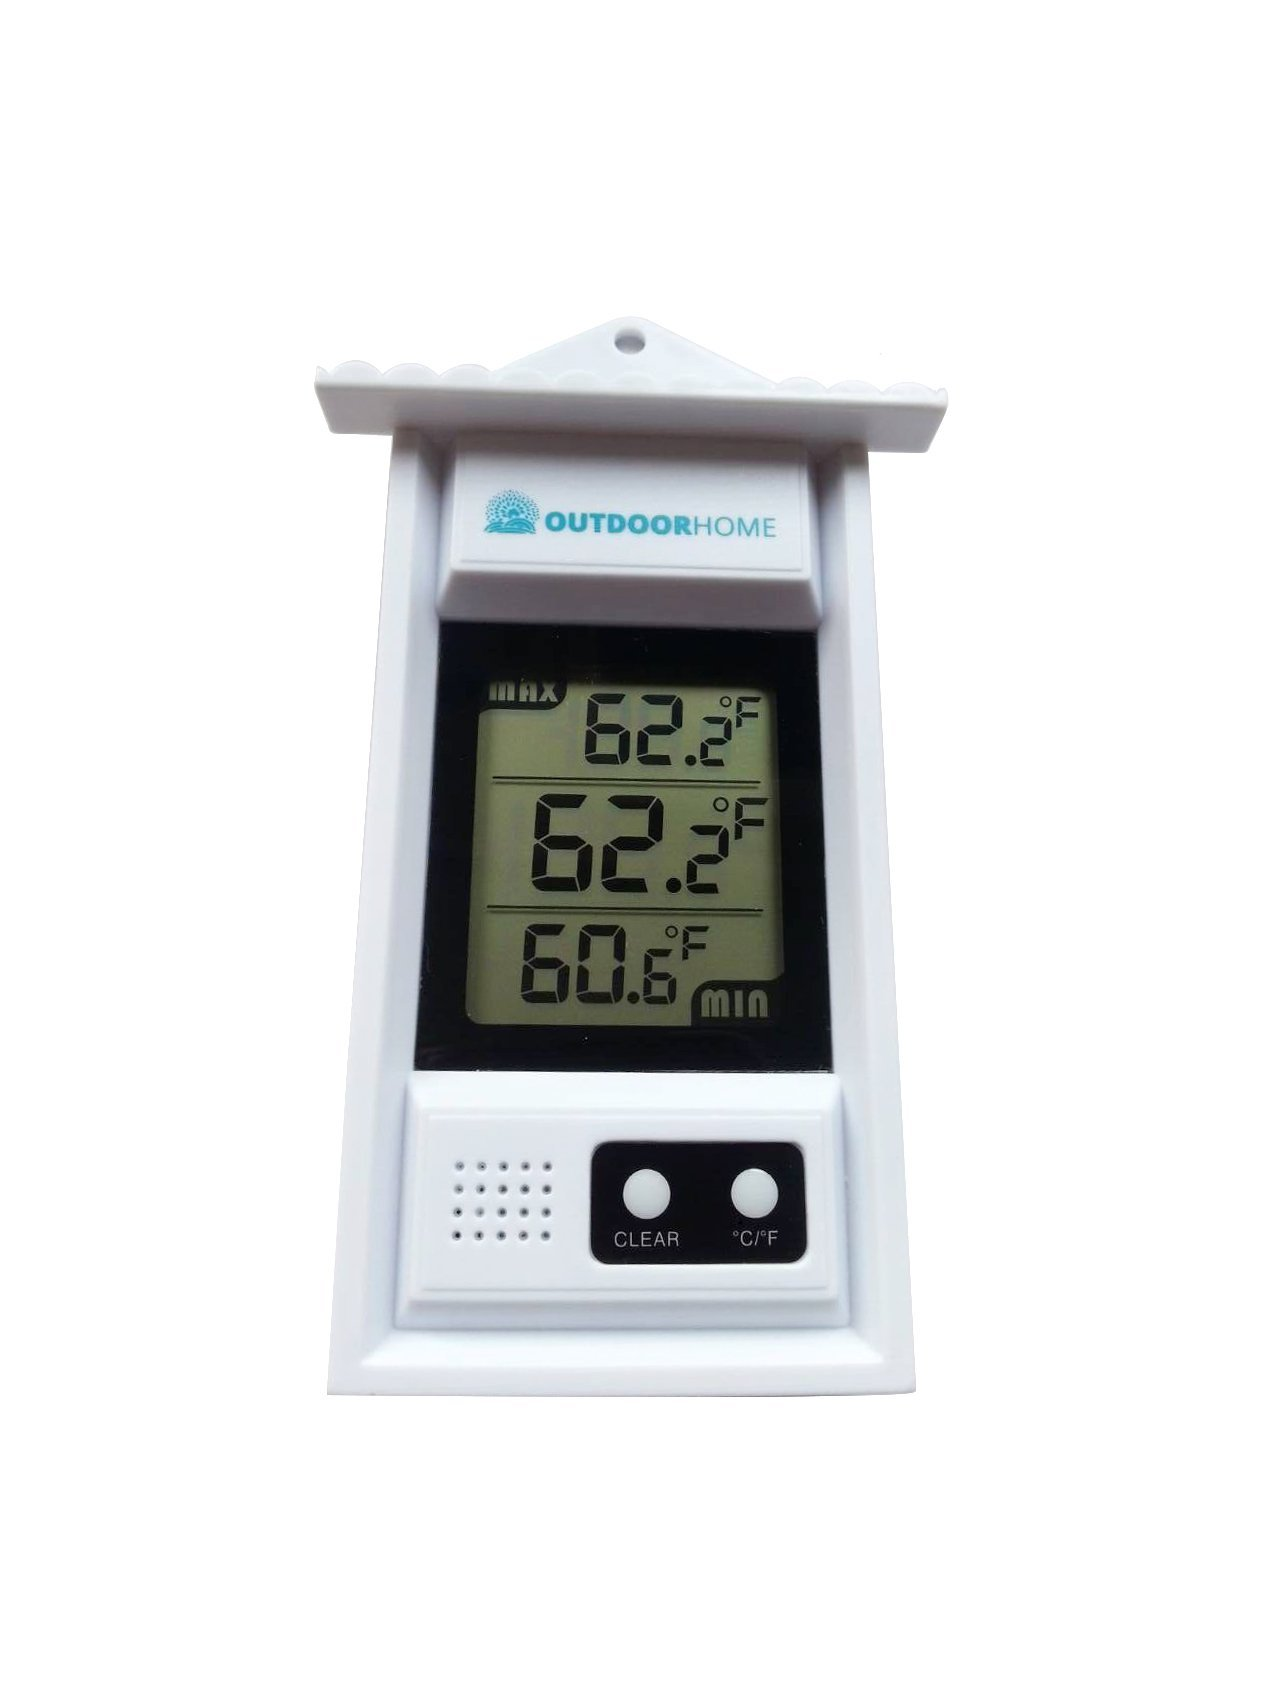 Digital Min Max Thermometer by Outdoor Home. Perfect for Garden, Patio or Greenhouse. Accurate Weather Thermometer with Current Temp & Auto Sensor for Min Max Readings Use Indoors Or Outdoors.